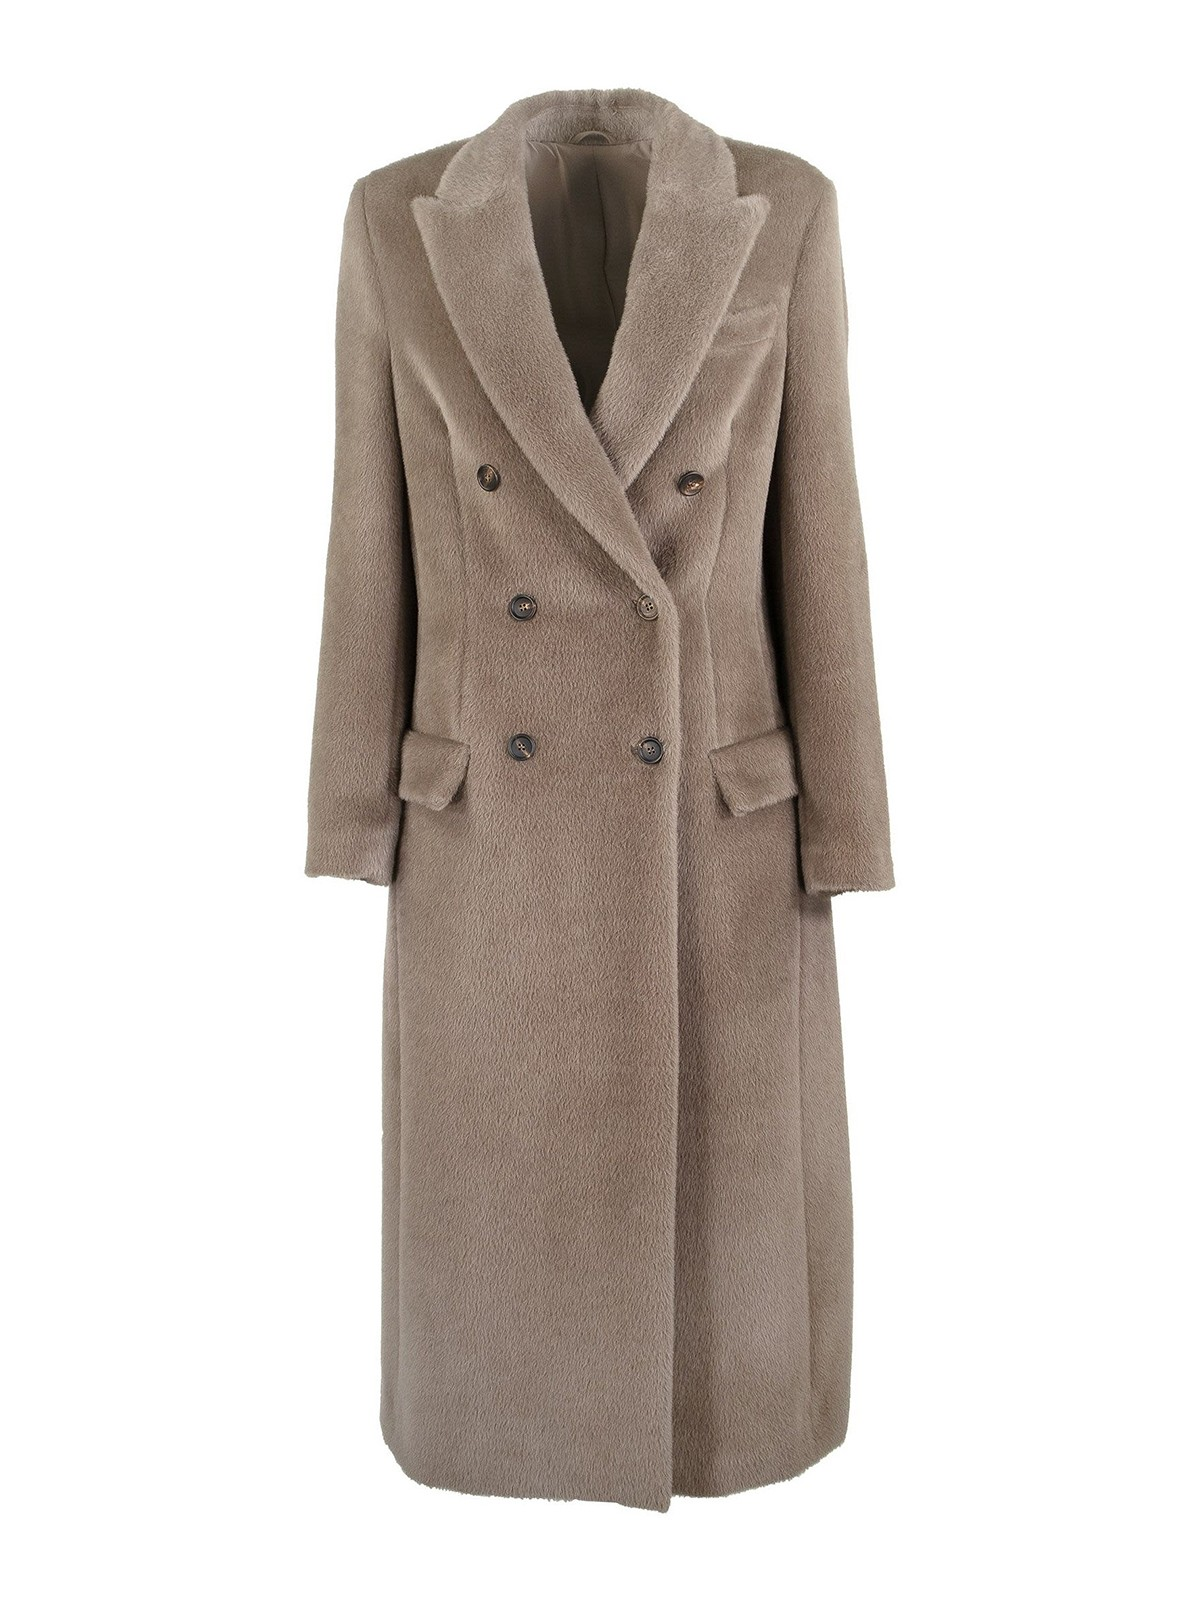 Brunello Cucinelli WOOL ALPACA BLEND COAT